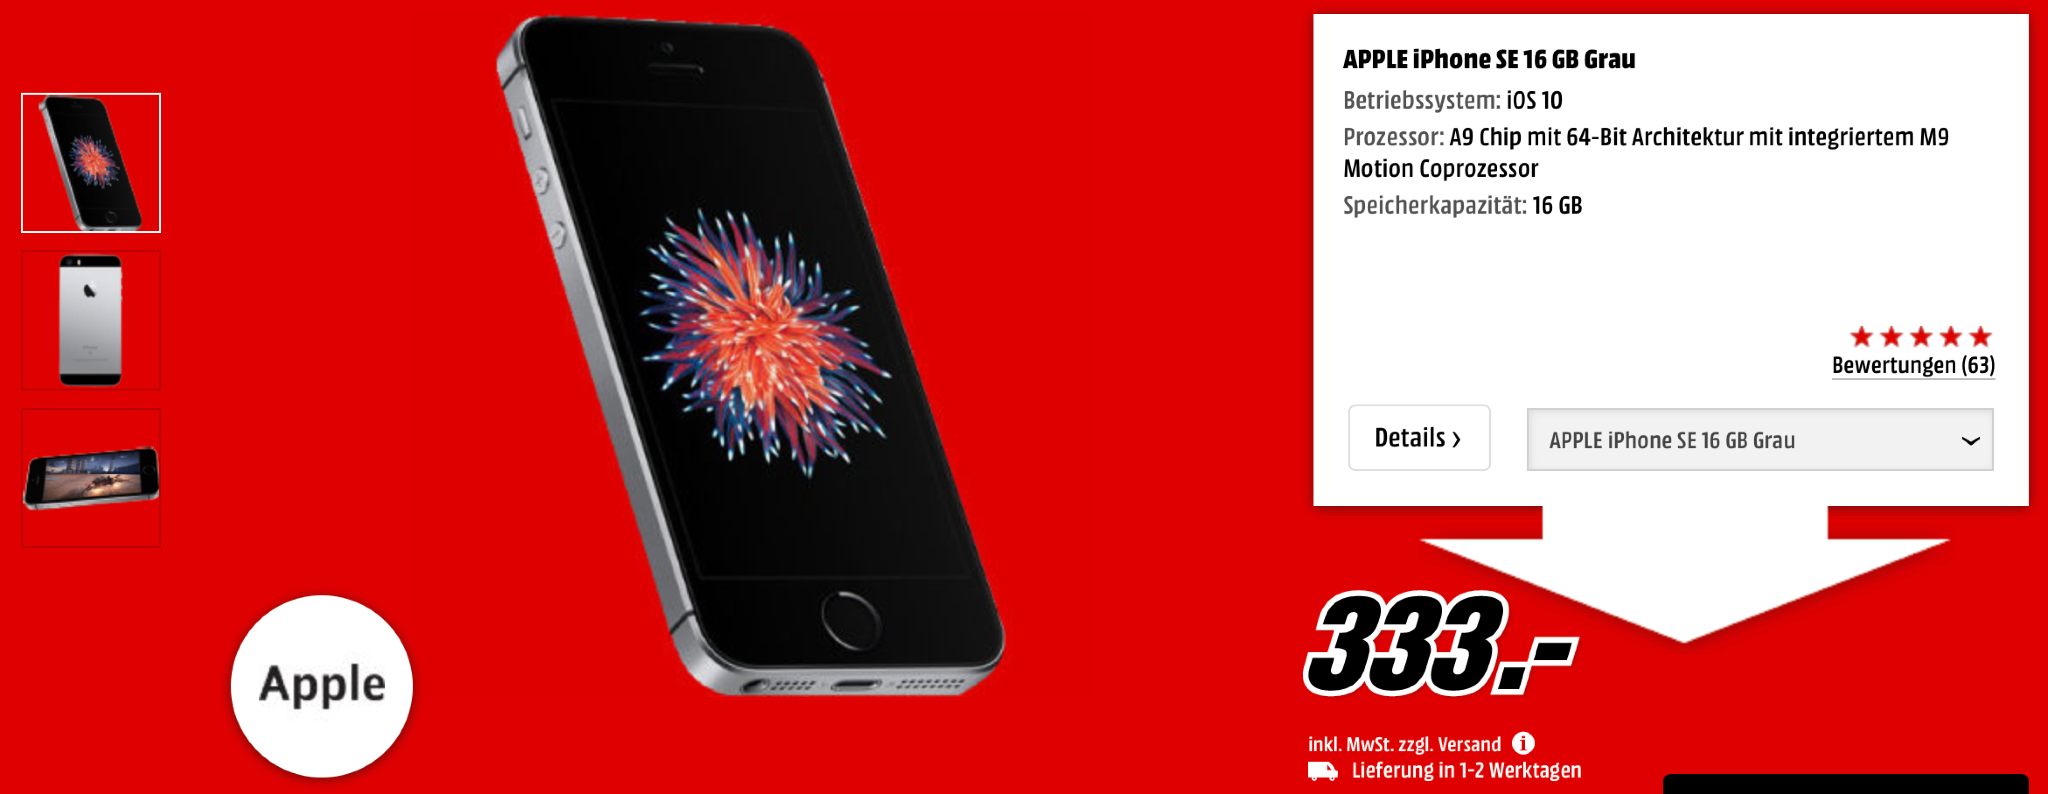 Iphone  Preis Media Markt